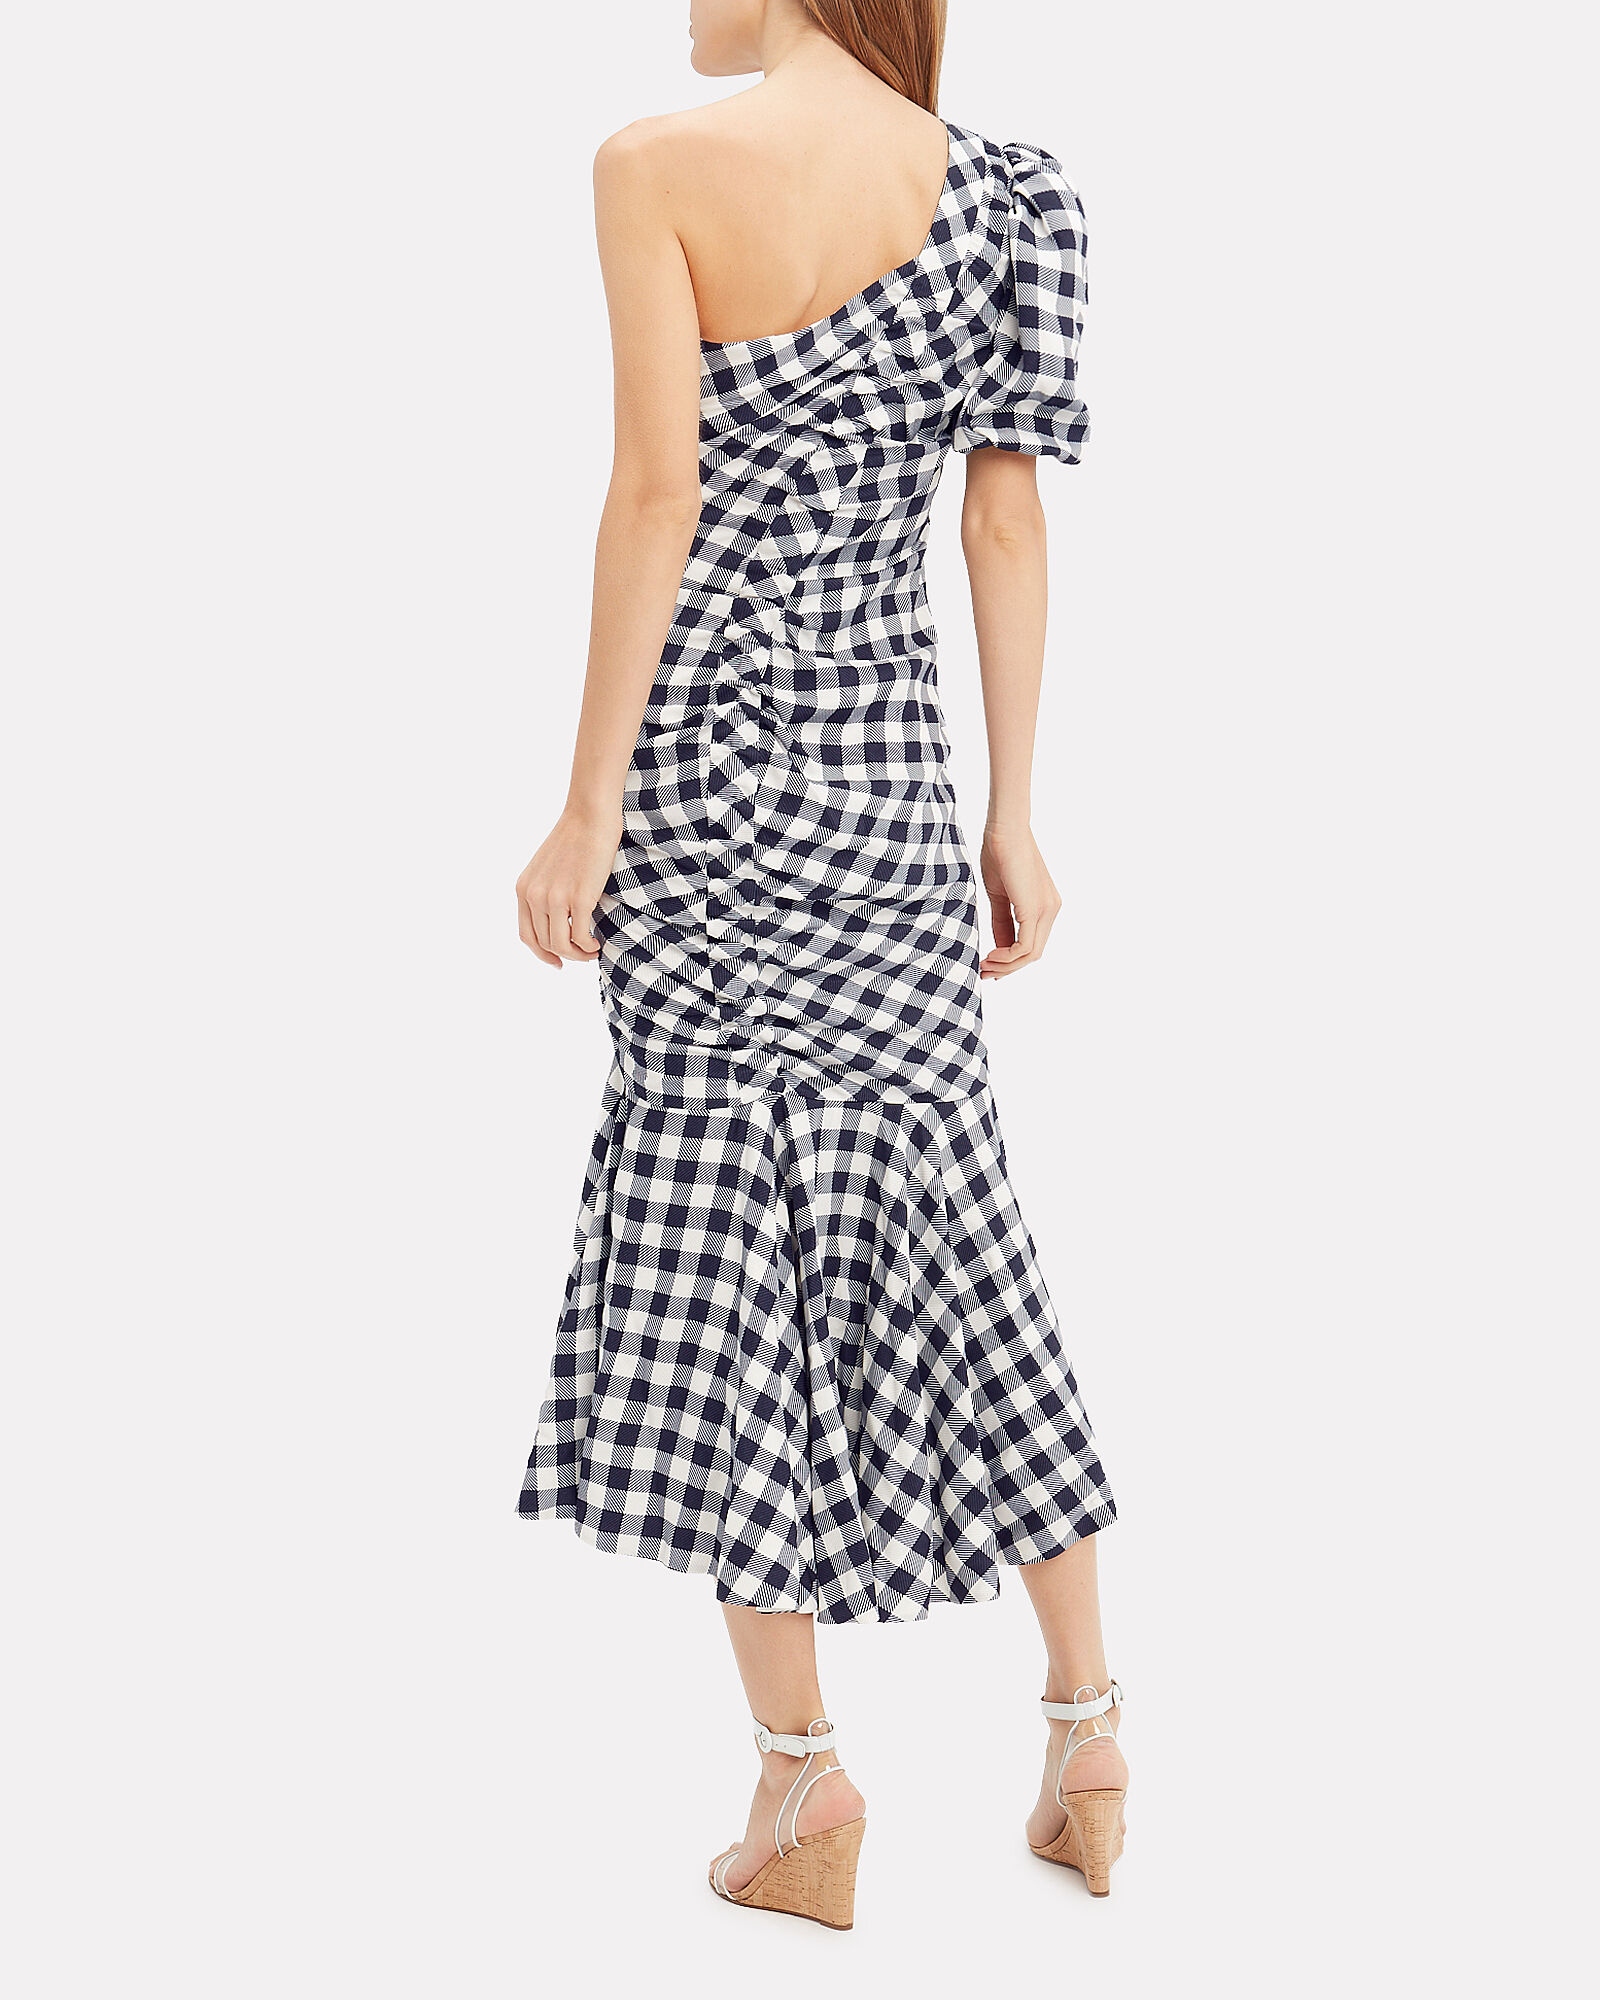 Lux Twill One-Shoulder Gingham Dress, NAVY, hi-res